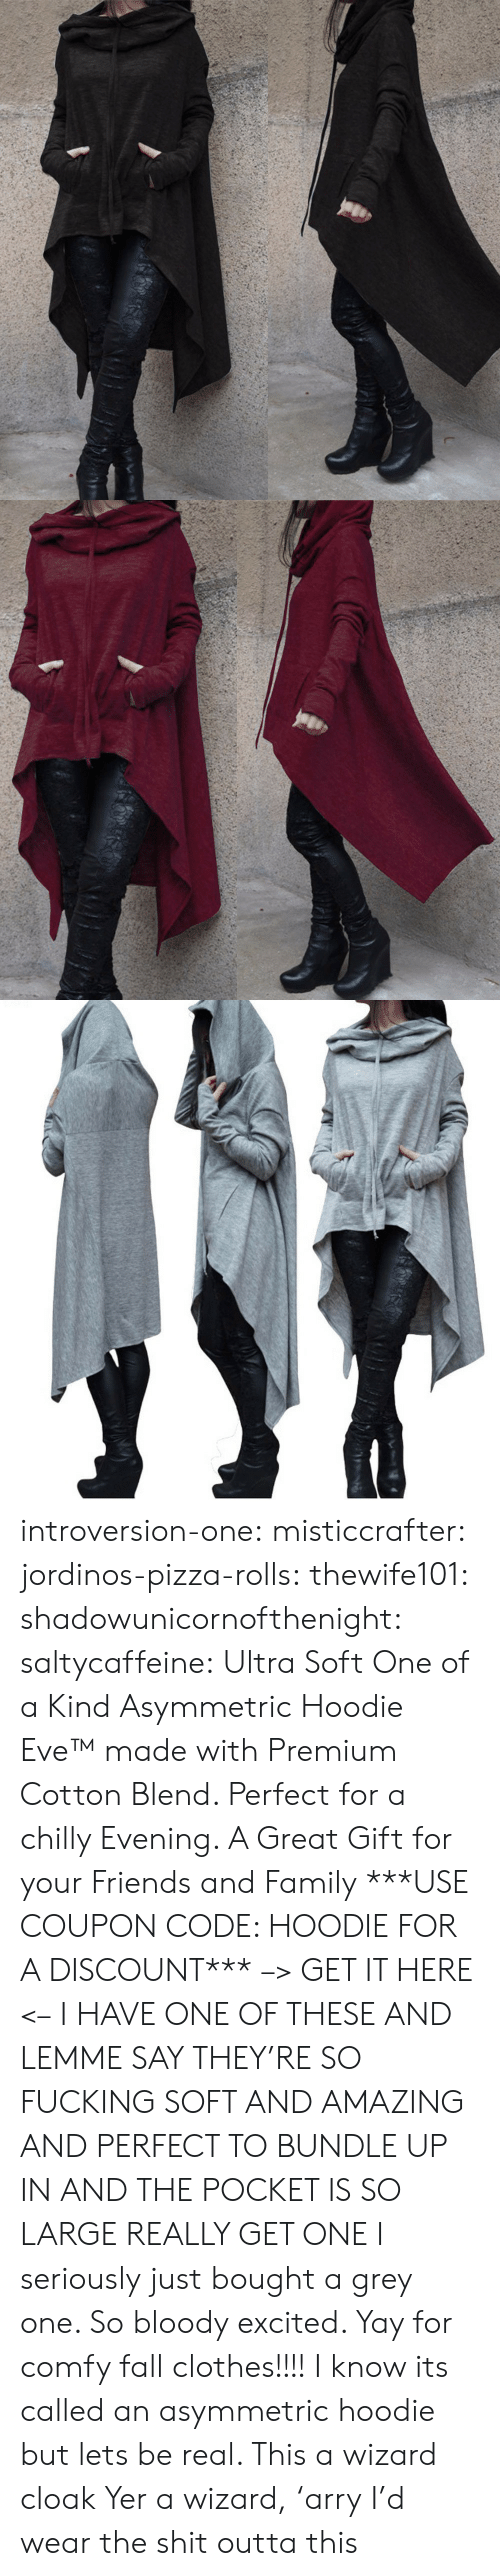 yer: introversion-one:  misticcrafter:  jordinos-pizza-rolls:  thewife101:  shadowunicornofthenight:  saltycaffeine:  Ultra Soft One of a Kind Asymmetric Hoodie Eve™ made with Premium Cotton Blend. Perfect for a chilly Evening. A Great Gift for your Friends and Family ***USE COUPON CODE: HOODIE FOR A DISCOUNT*** –> GET IT HERE <–   I HAVE ONE OF THESE AND LEMME SAY THEY'RE SO FUCKING SOFT AND AMAZING AND PERFECT TO BUNDLE UP IN AND THE POCKET IS SO LARGE REALLY GET ONE   I seriously just bought a grey one. So bloody excited. Yay for comfy fall clothes!!!!    I know its called an asymmetric hoodie but lets be real. This a wizard cloak  Yer a wizard, 'arry   I'd wear the shit outta this